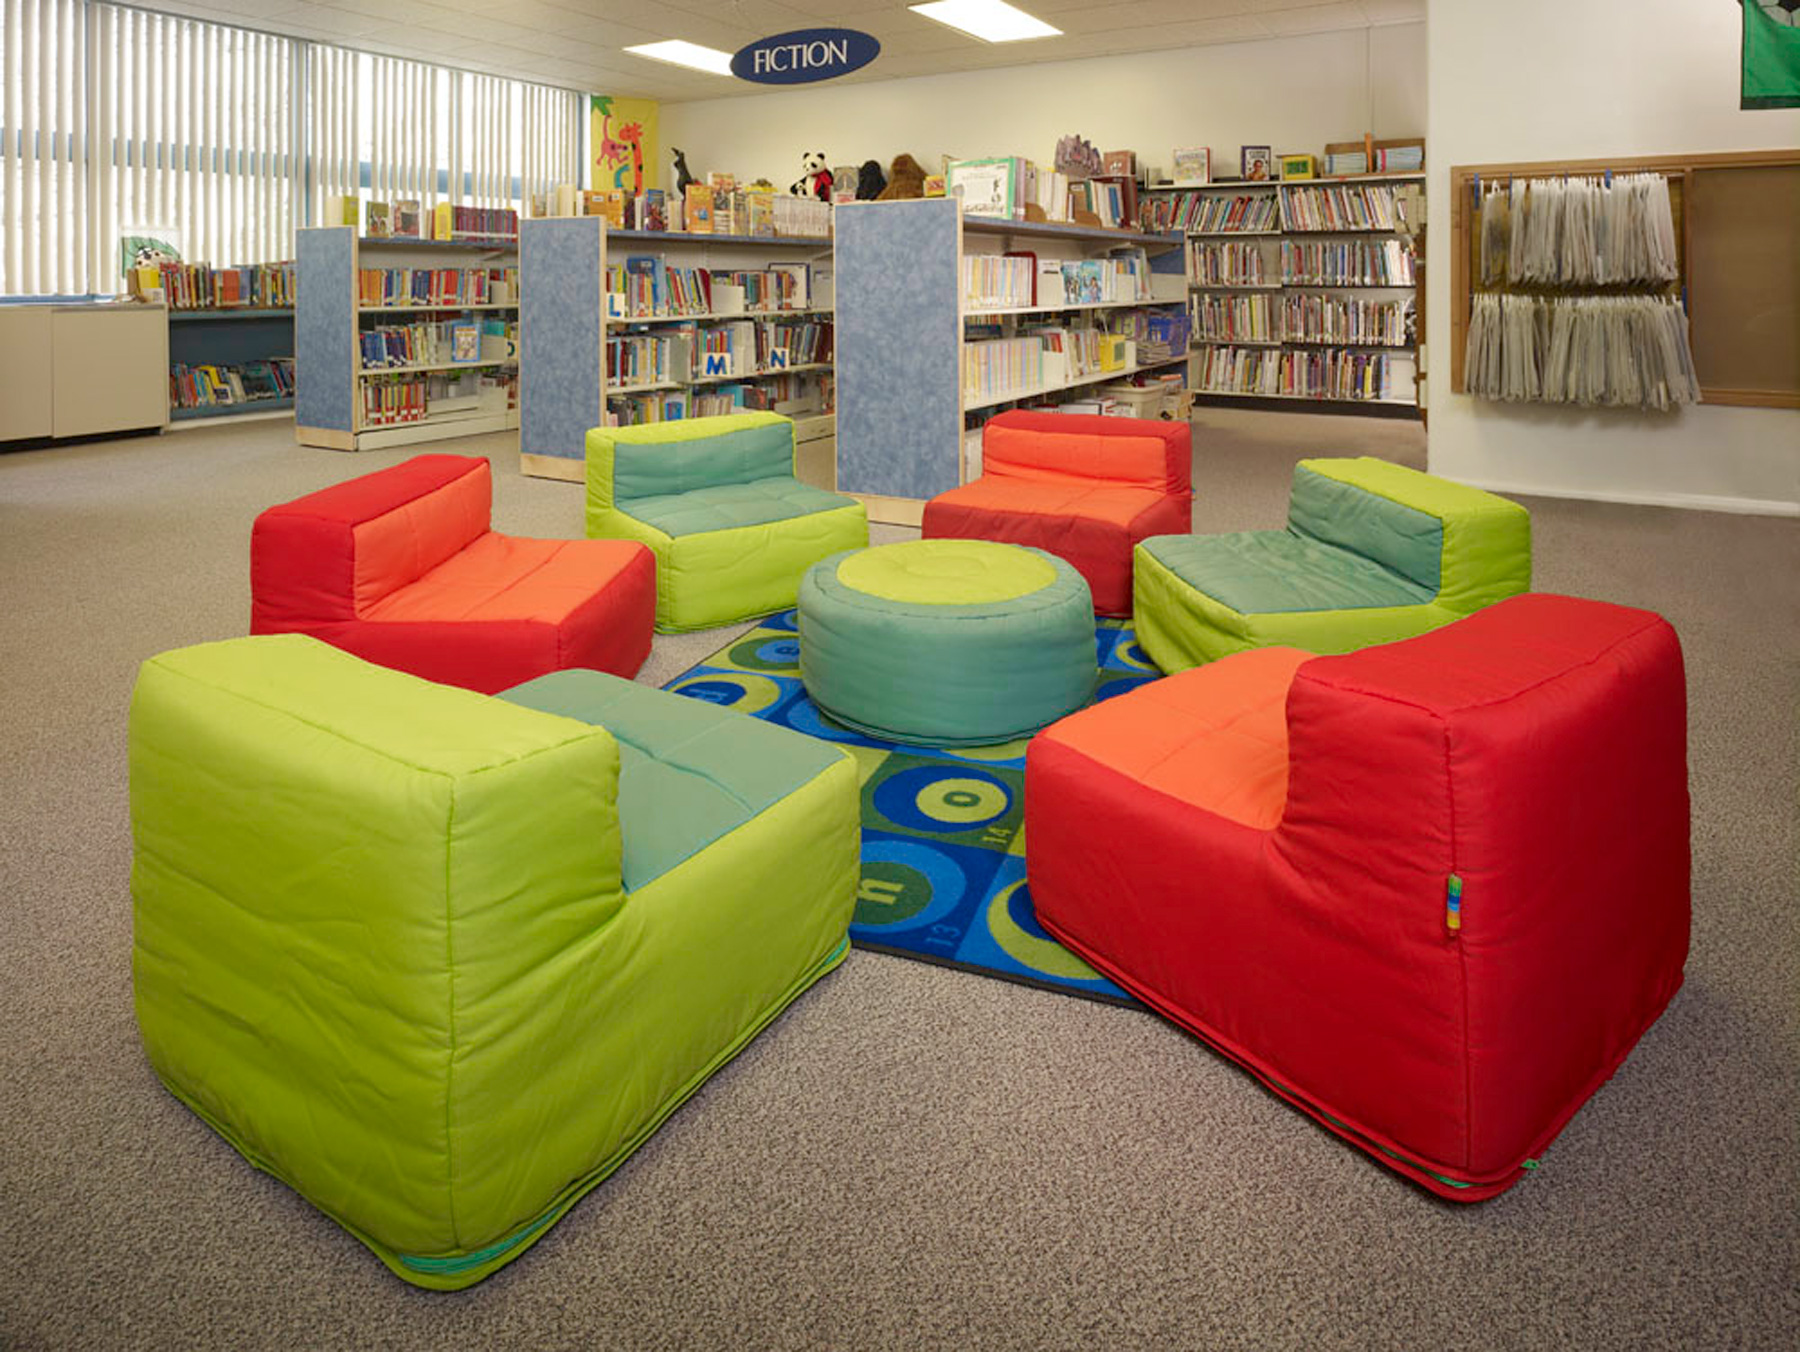 Making Over An Existing Space Barclay Elementary School Ideas Inspiration From Demco